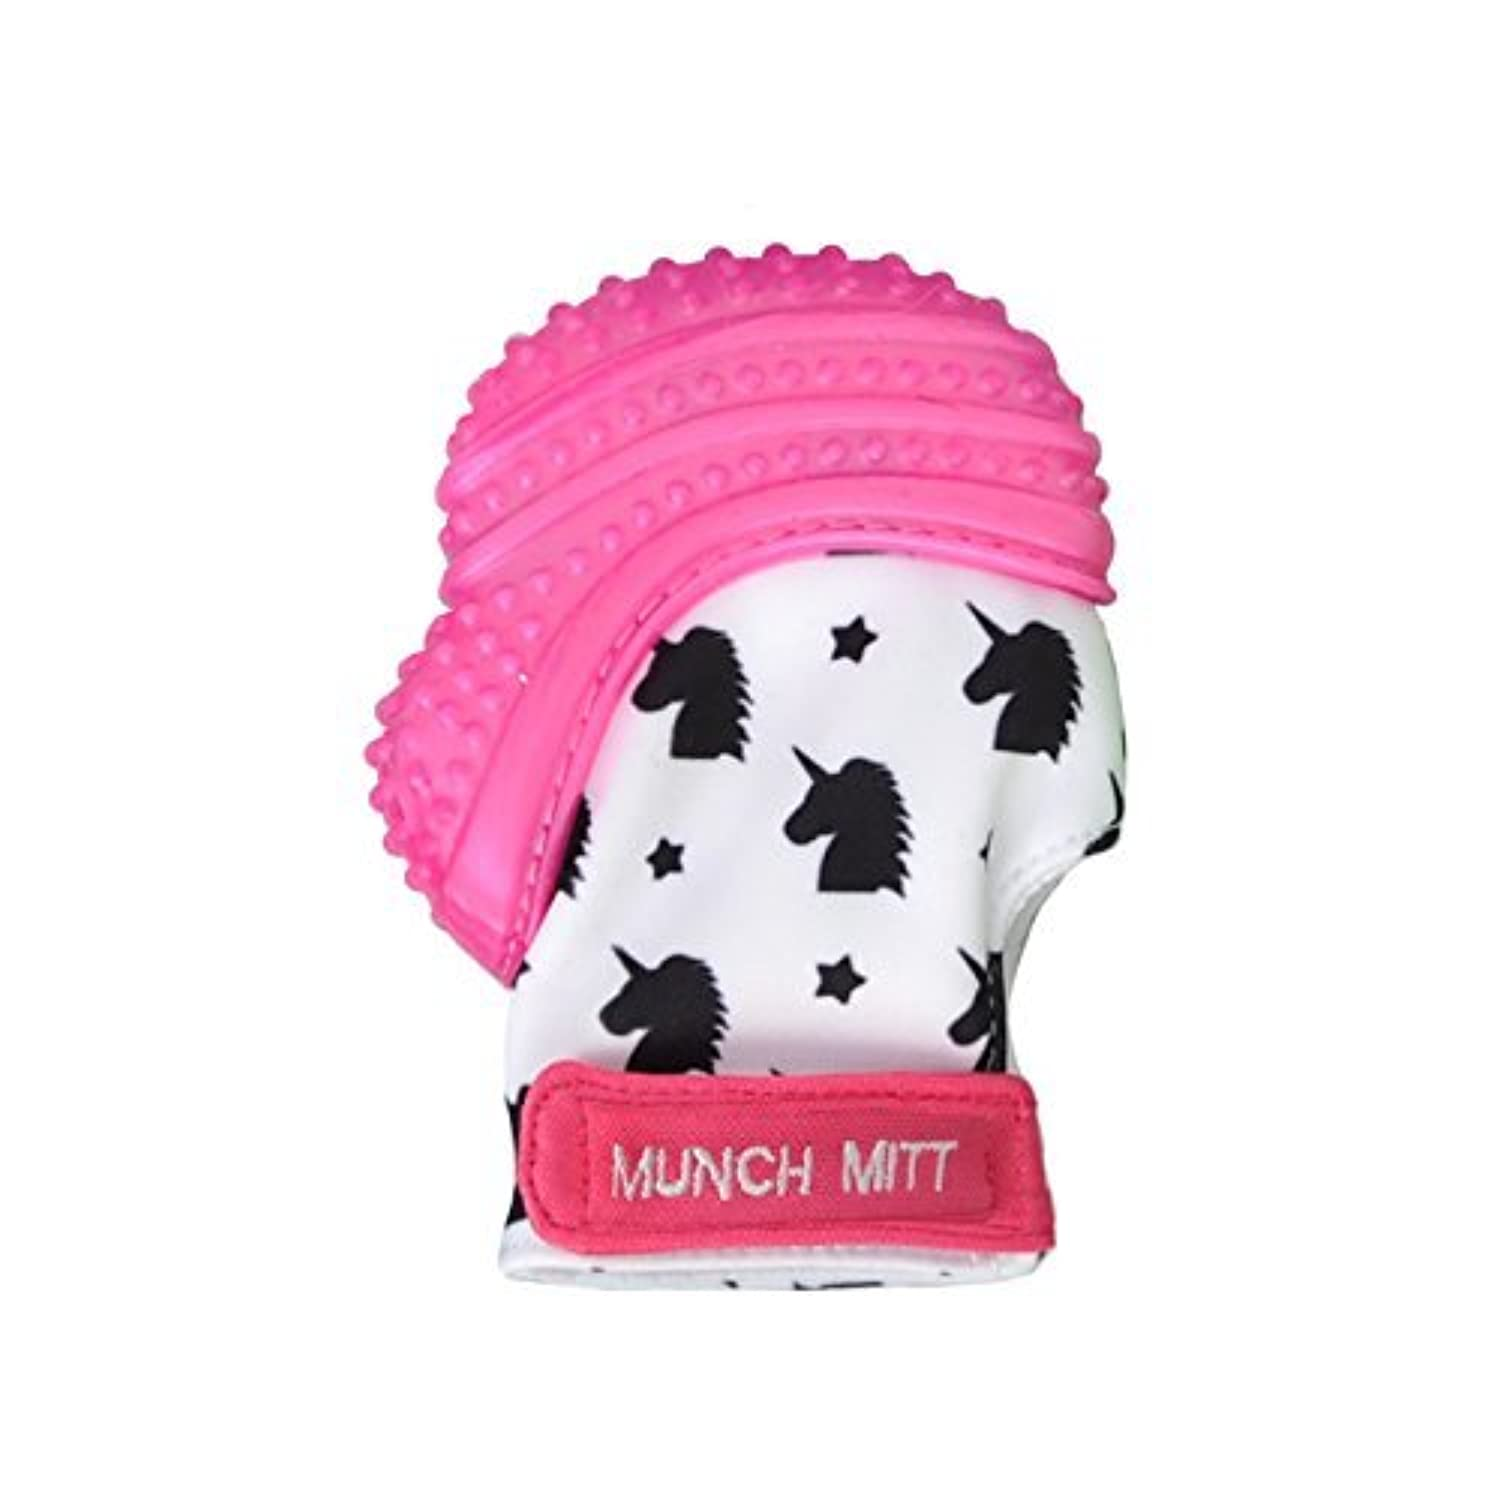 Munch Mitt Teething Mitten the Original Mom Invented Teething Toy- Teether Stays on Babys Hand for Pain Relief & Stimulation- Ideal Baby Shower Gift with Handy Travel/Laundry Bag- Pink Shimmer Unicorn [並行輸入品]